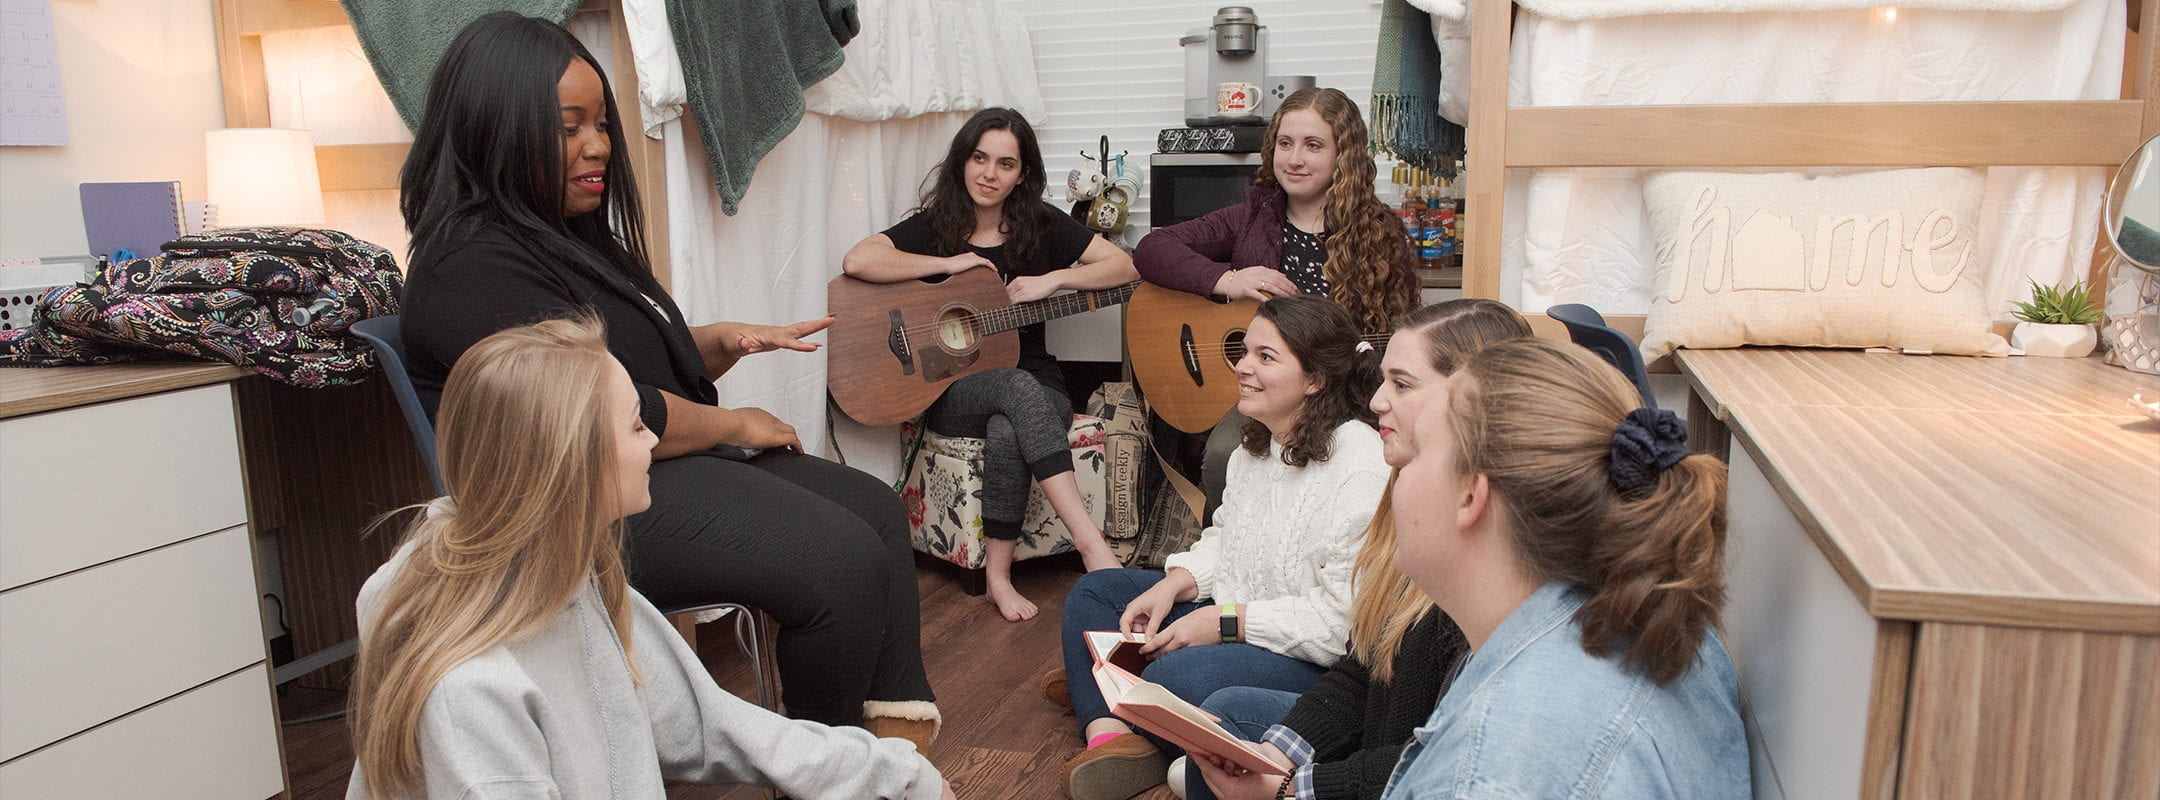 Students in their dorm room gathered around talking, two holding guitars.